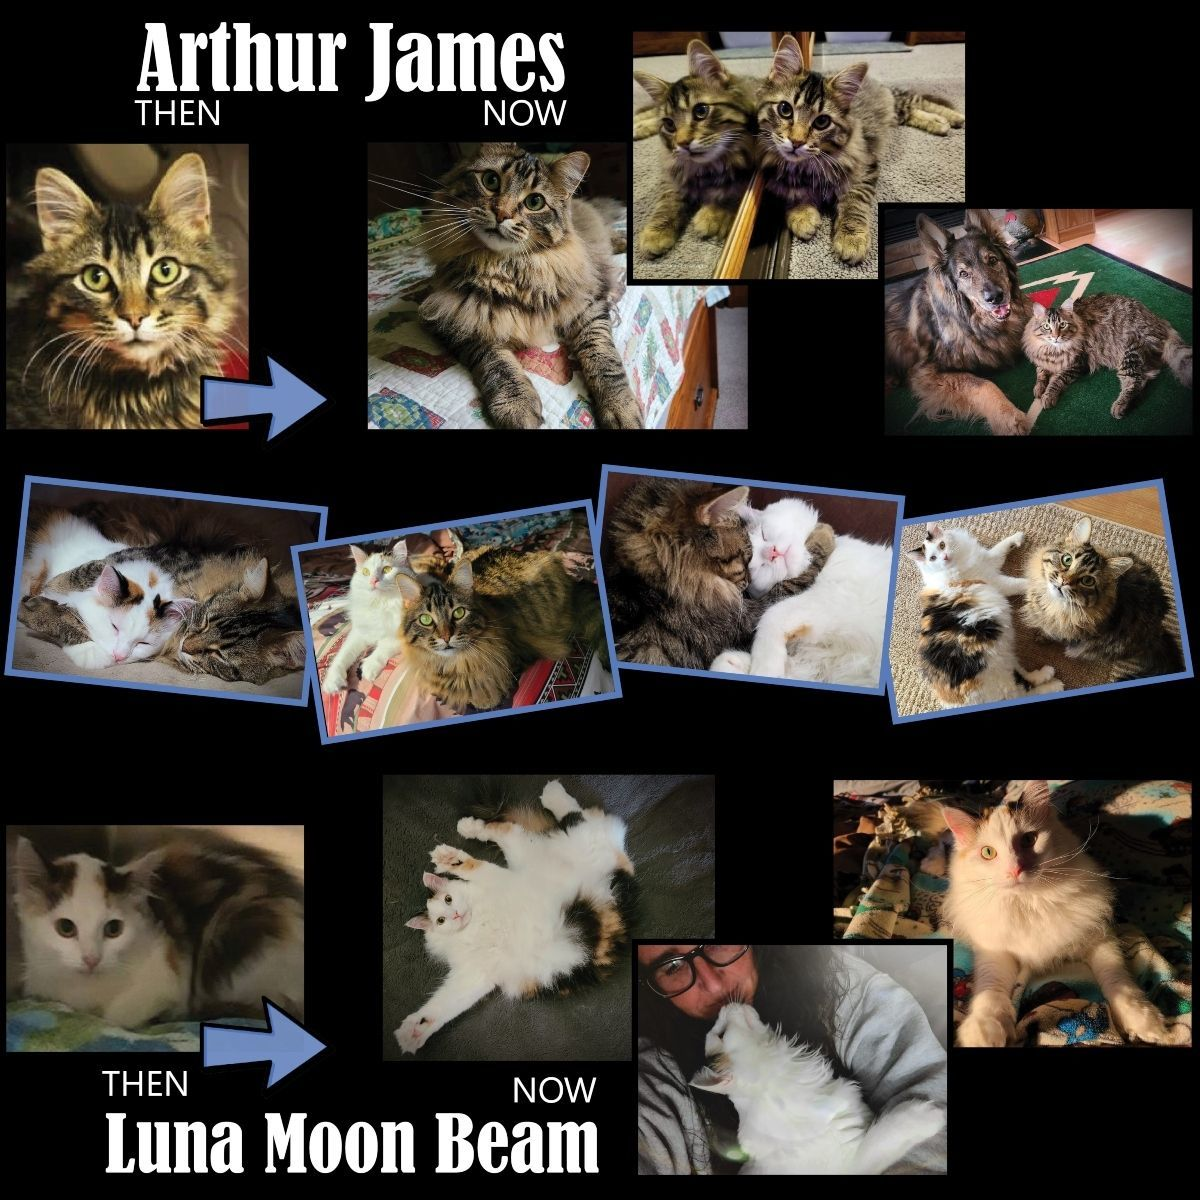 Arthur James and Luna Moon Beam